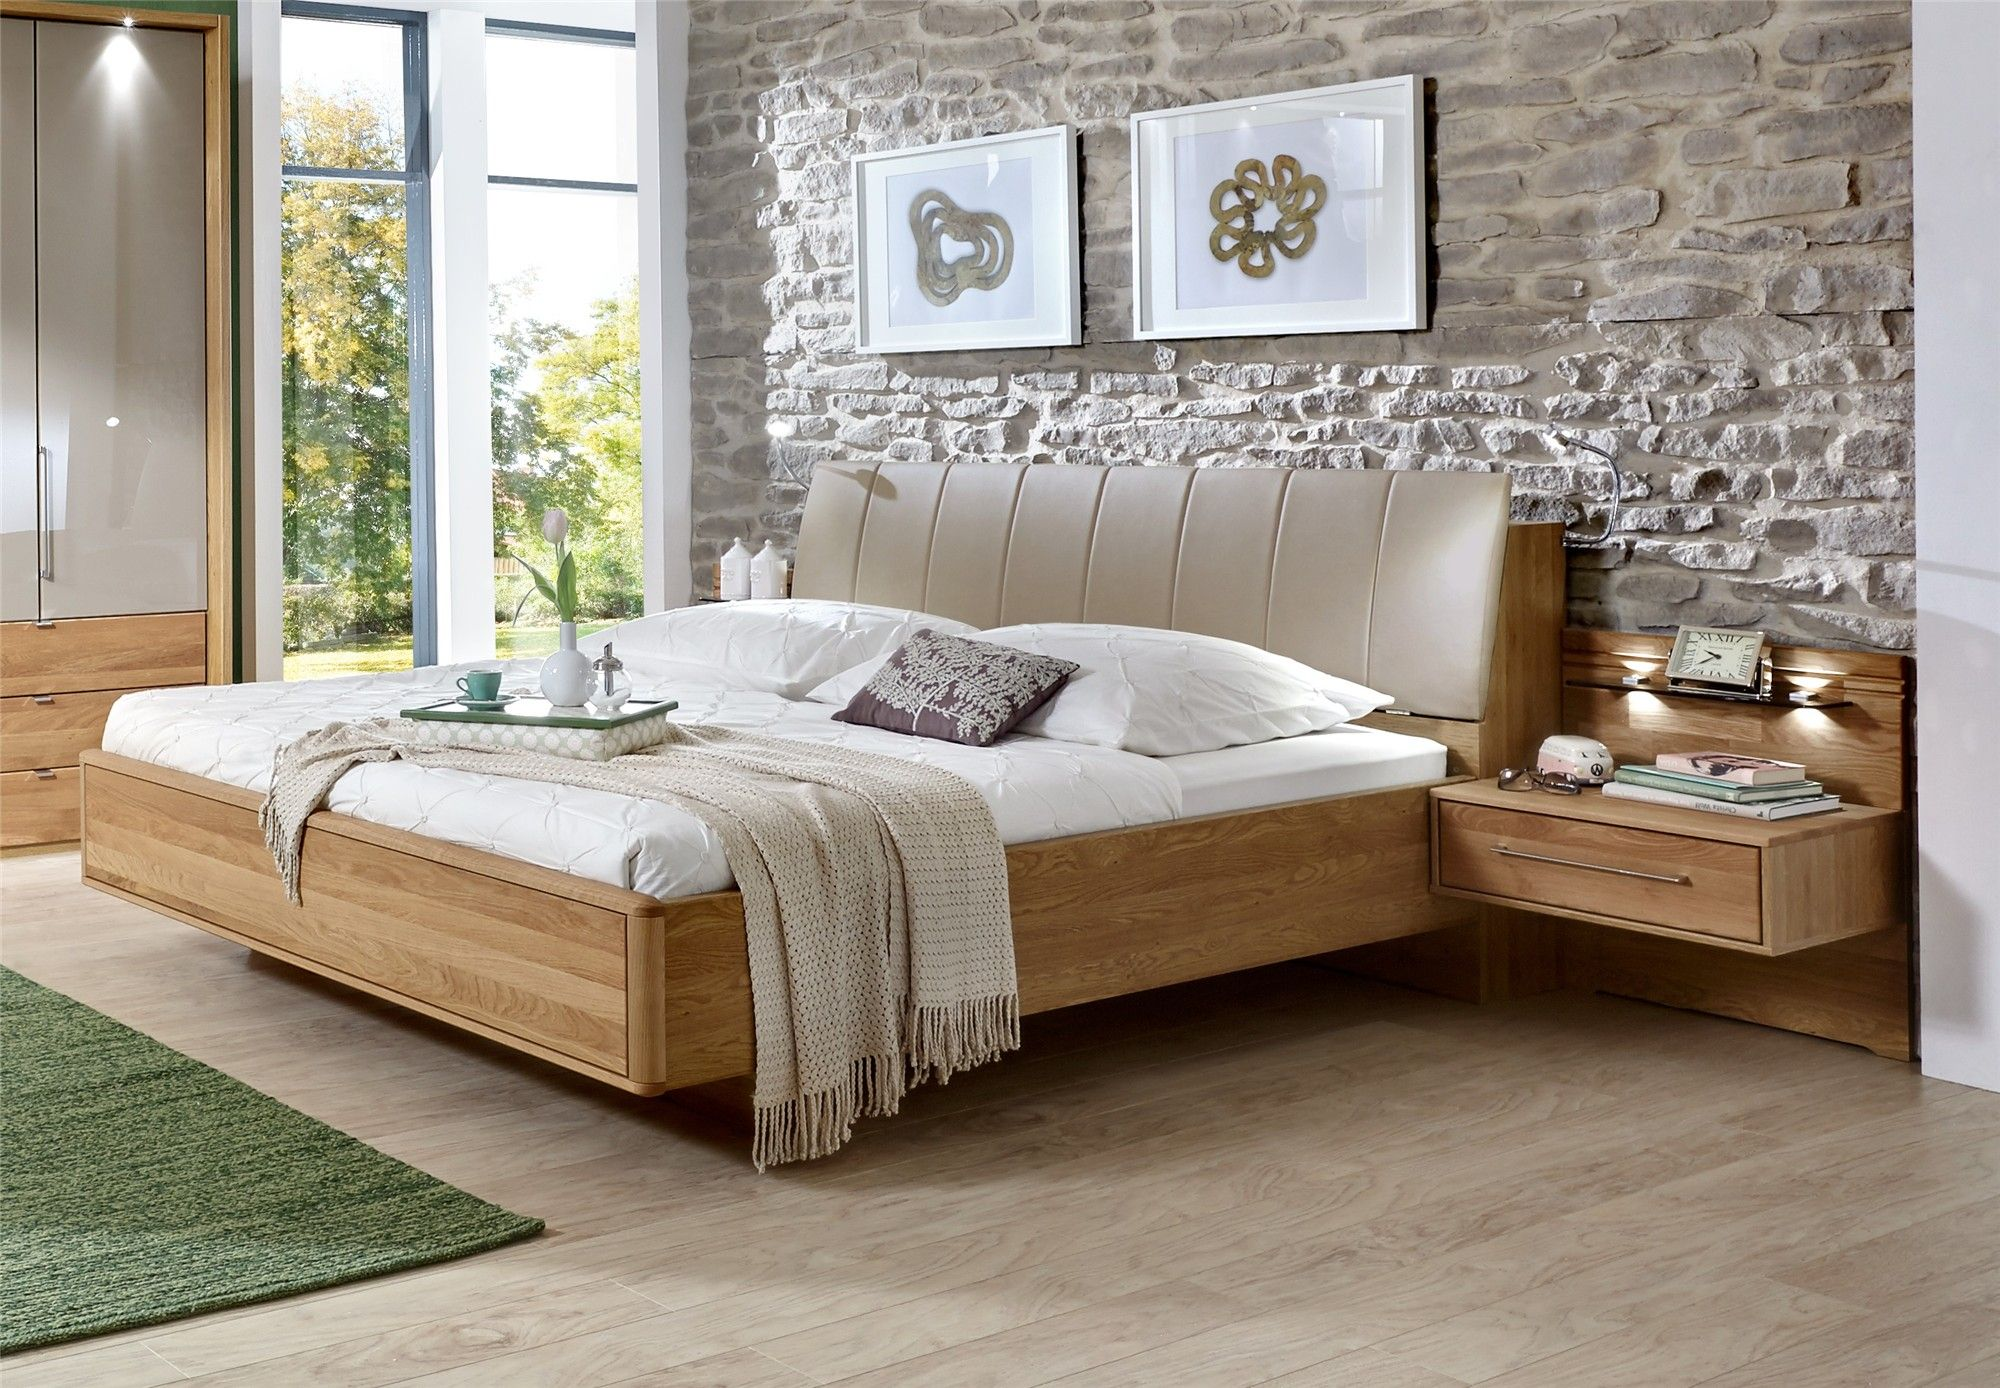 stylform selene semi solid oak faux leather modern bed 16230 | 15d88167c43ba322595e93808798b1f4